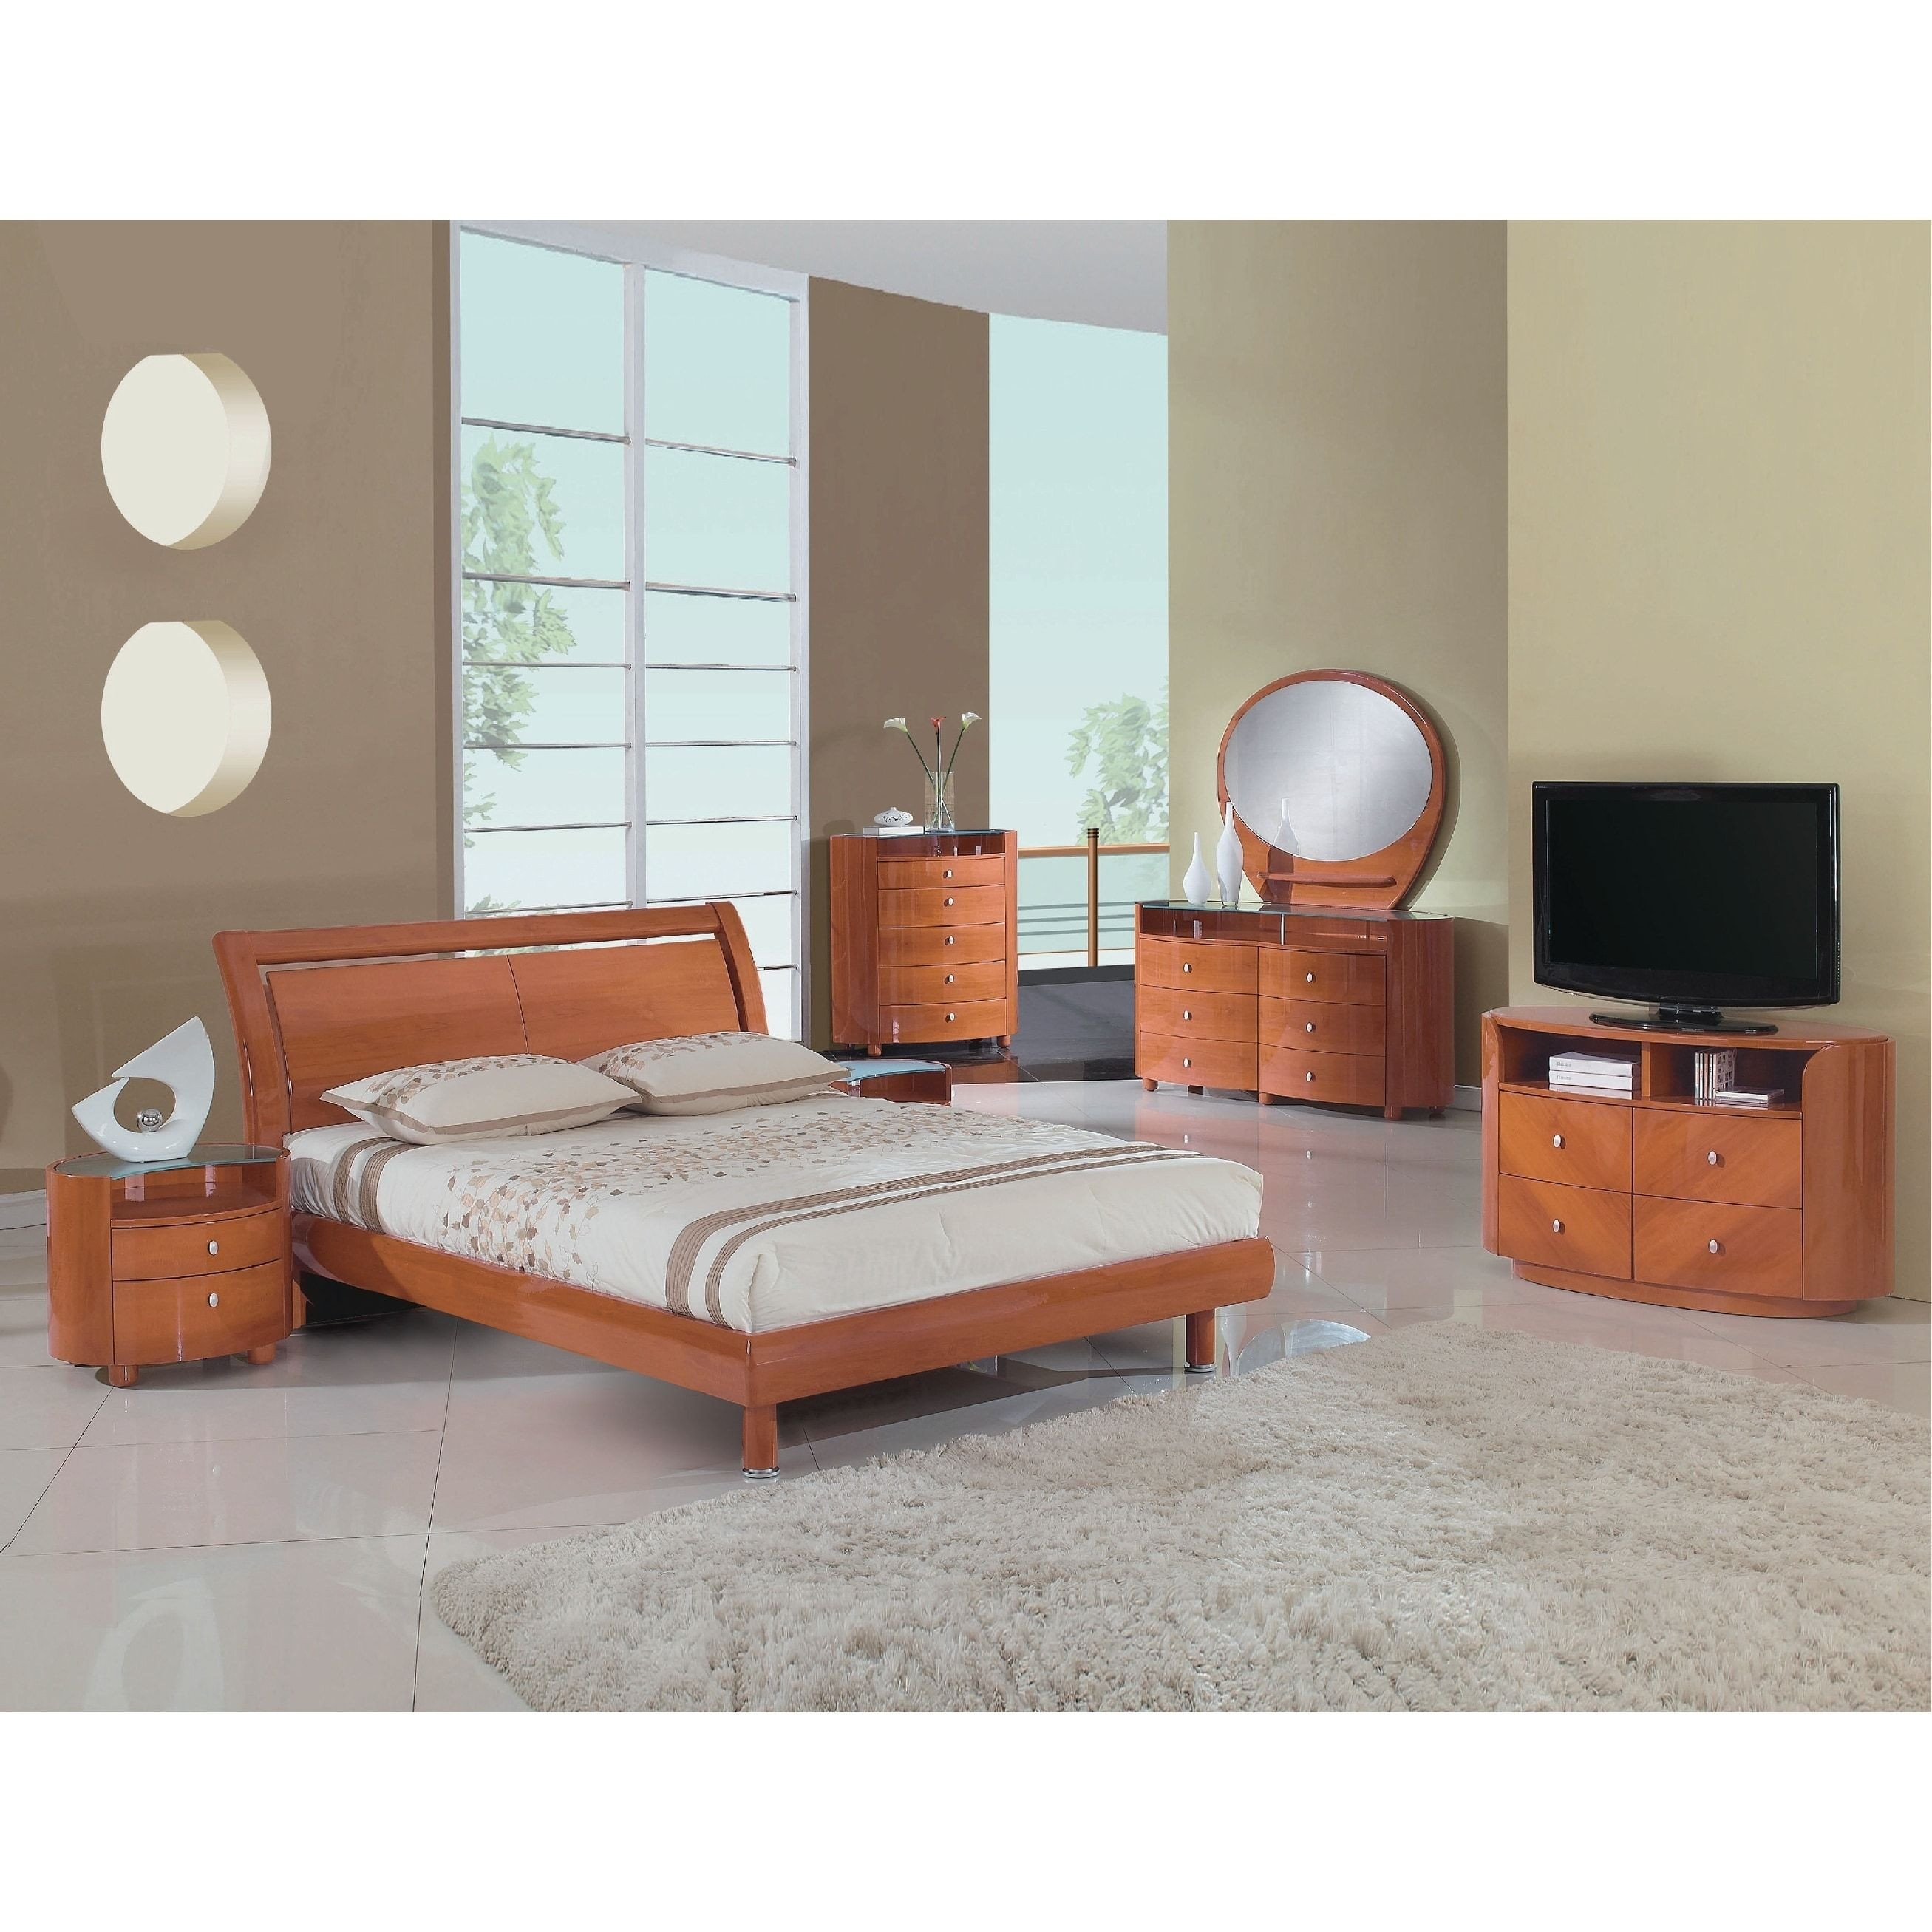 King Bedroom Set Cheap Lovely Line Shopping Bedding Furniture Electronics Jewelry